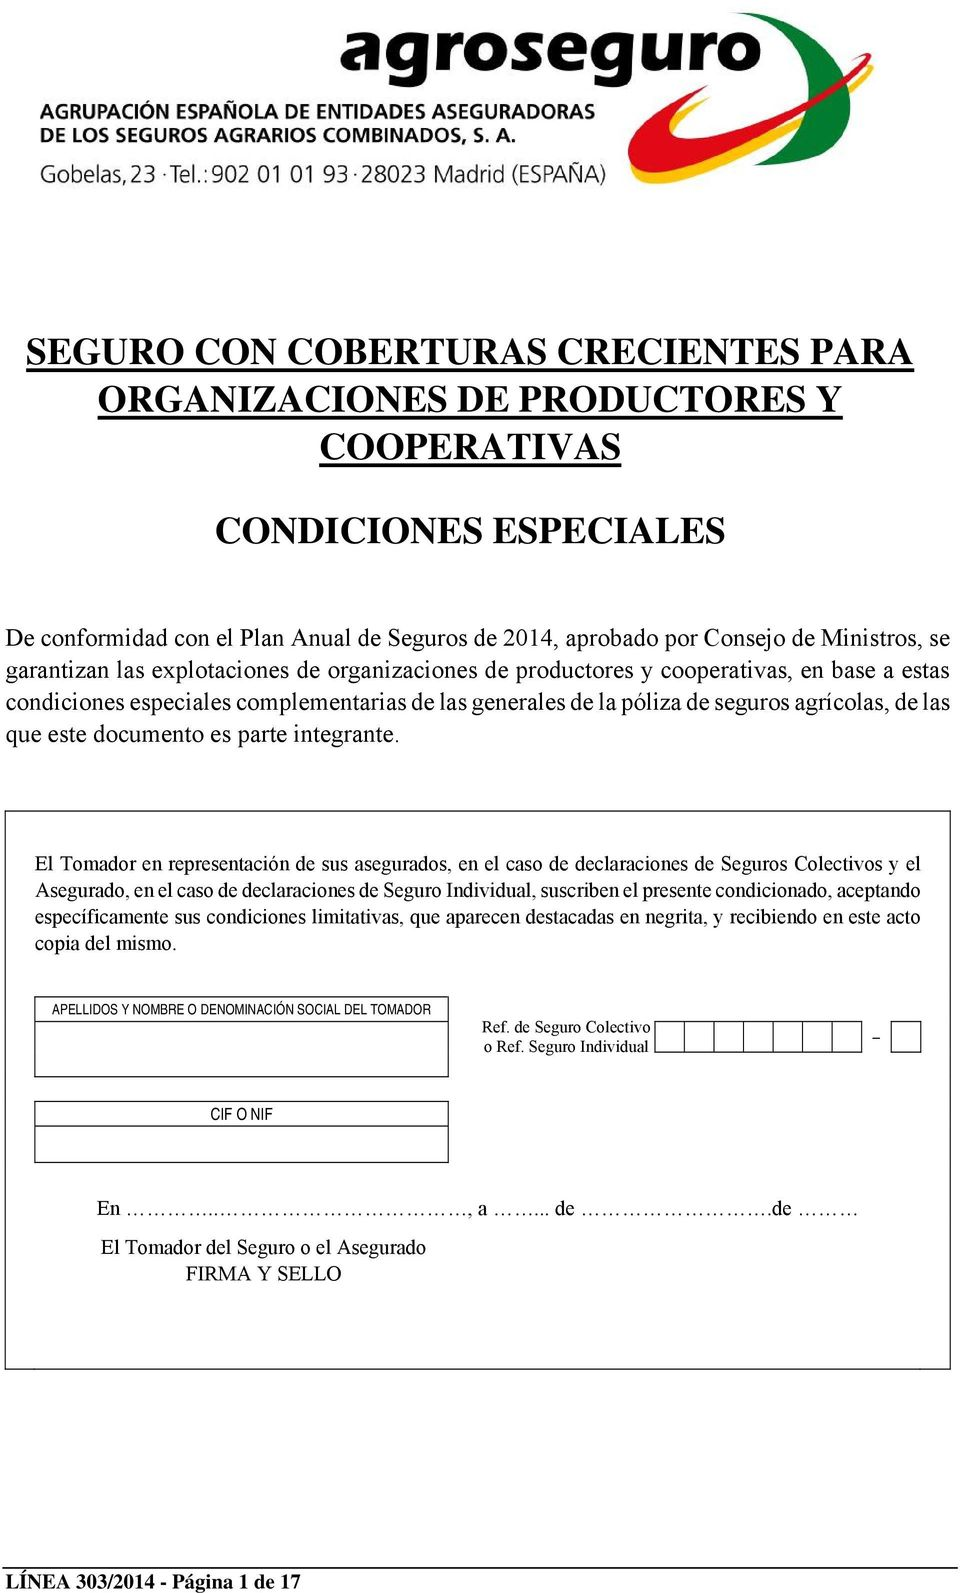 este documento es parte integrante.